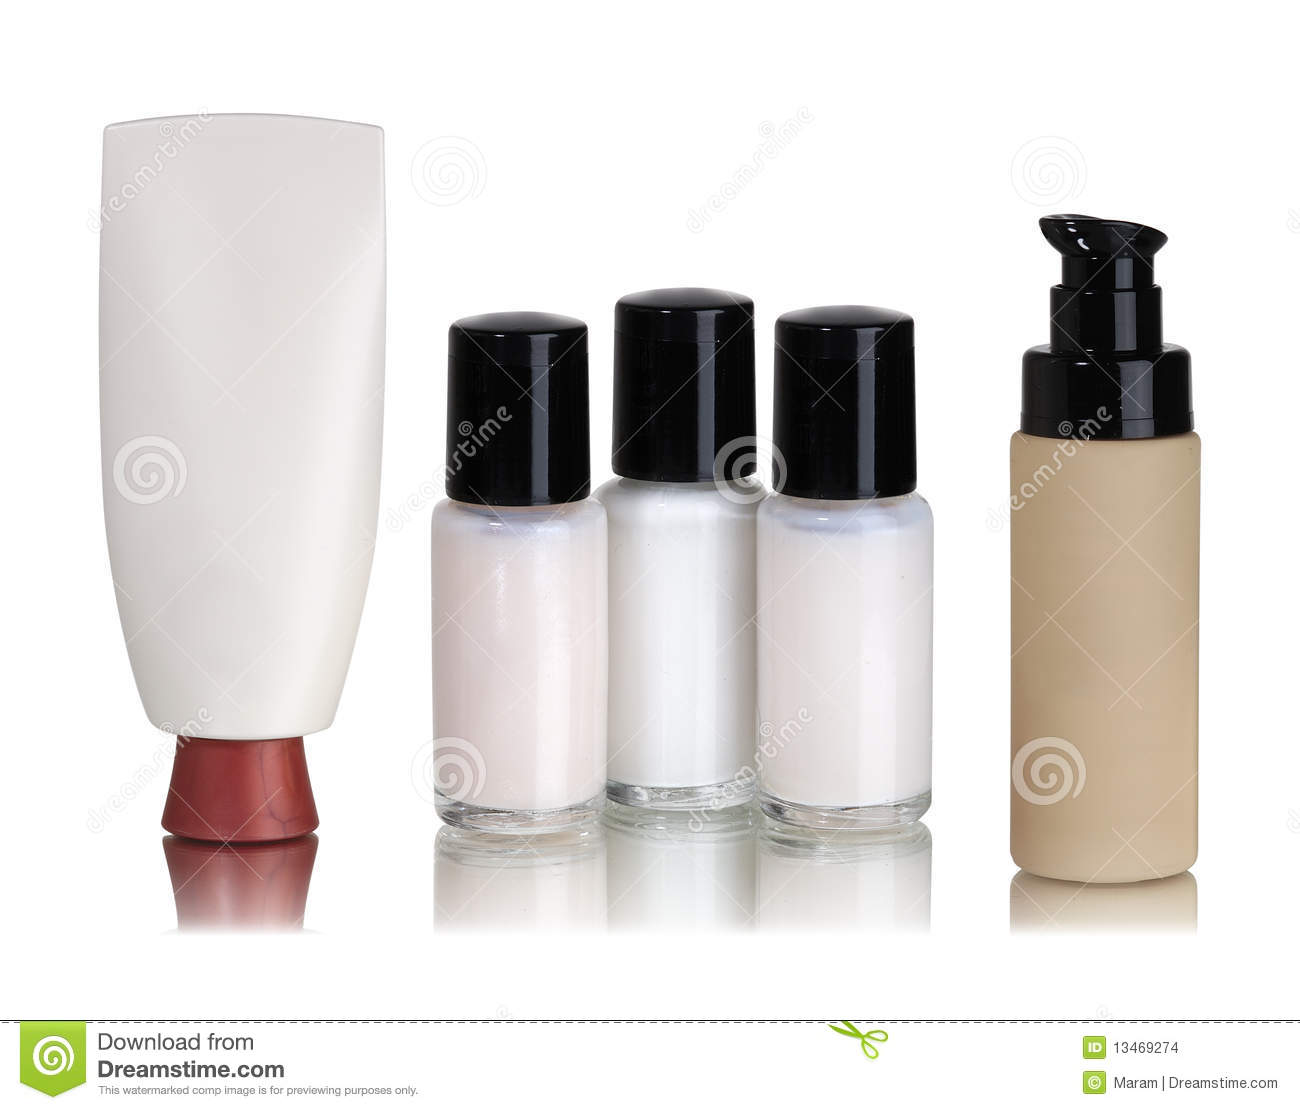 Cosmetics containers stock images - image: 13469274.